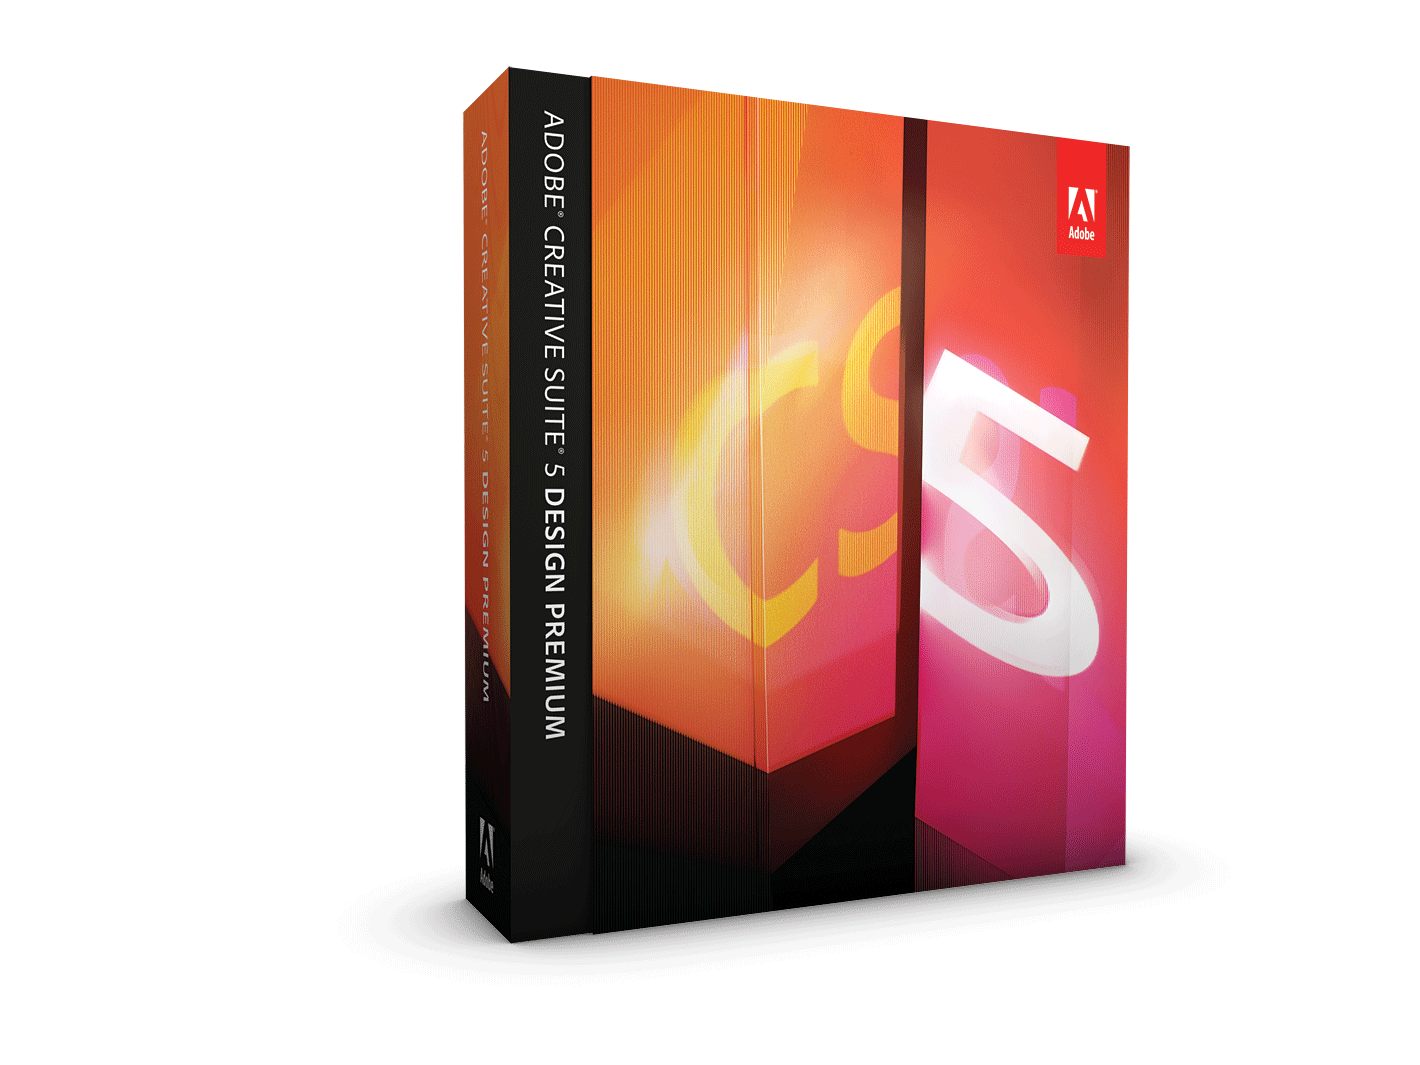 Adobe creative suite premium 1.3 upgrade from photoshop cs5 design